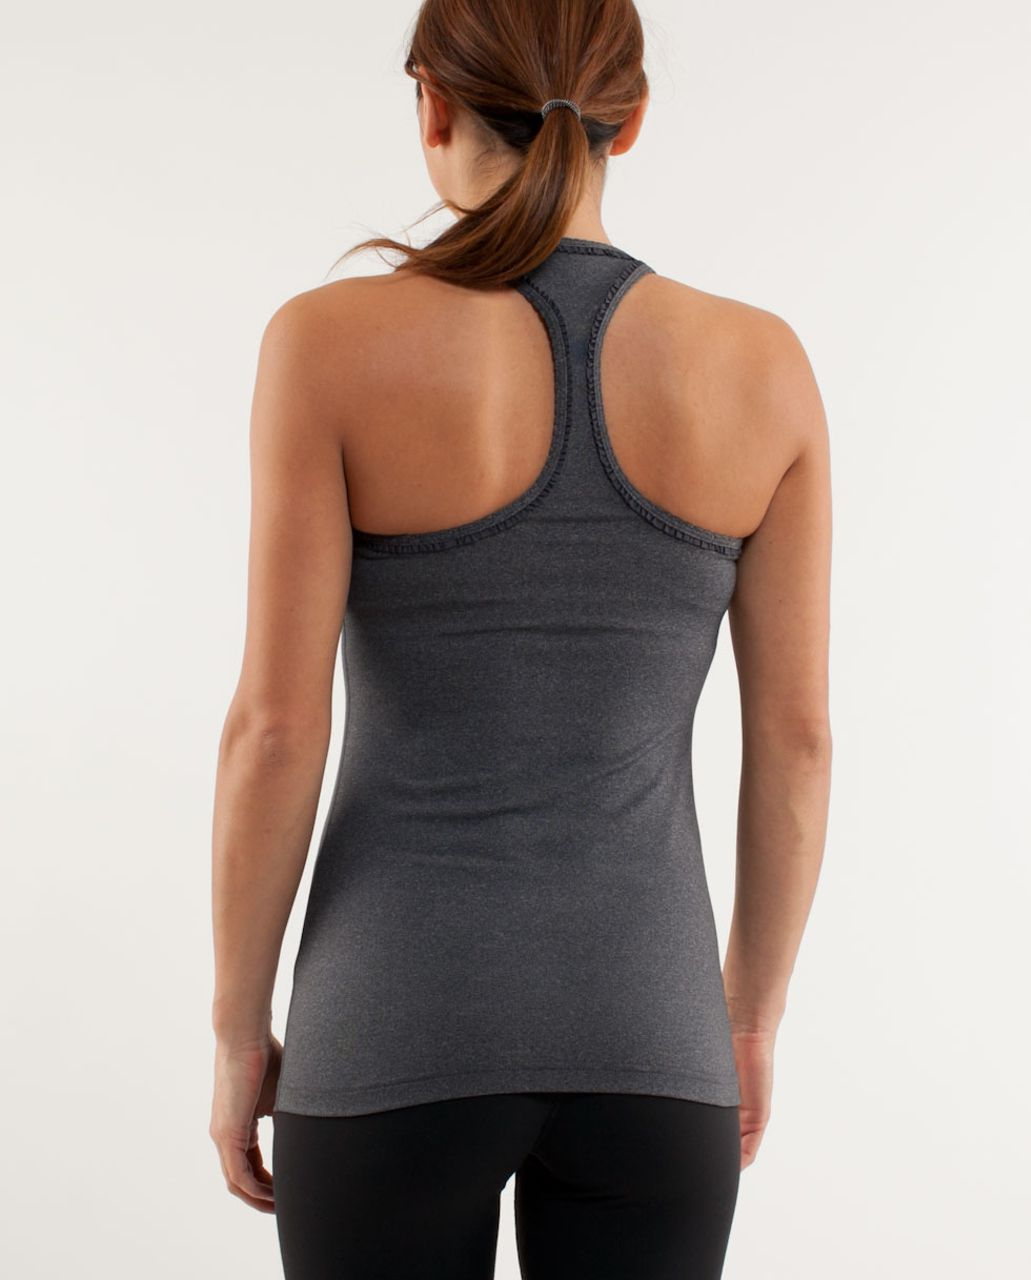 Lululemon Cool Racerback *Ruffle - Heathered Coal